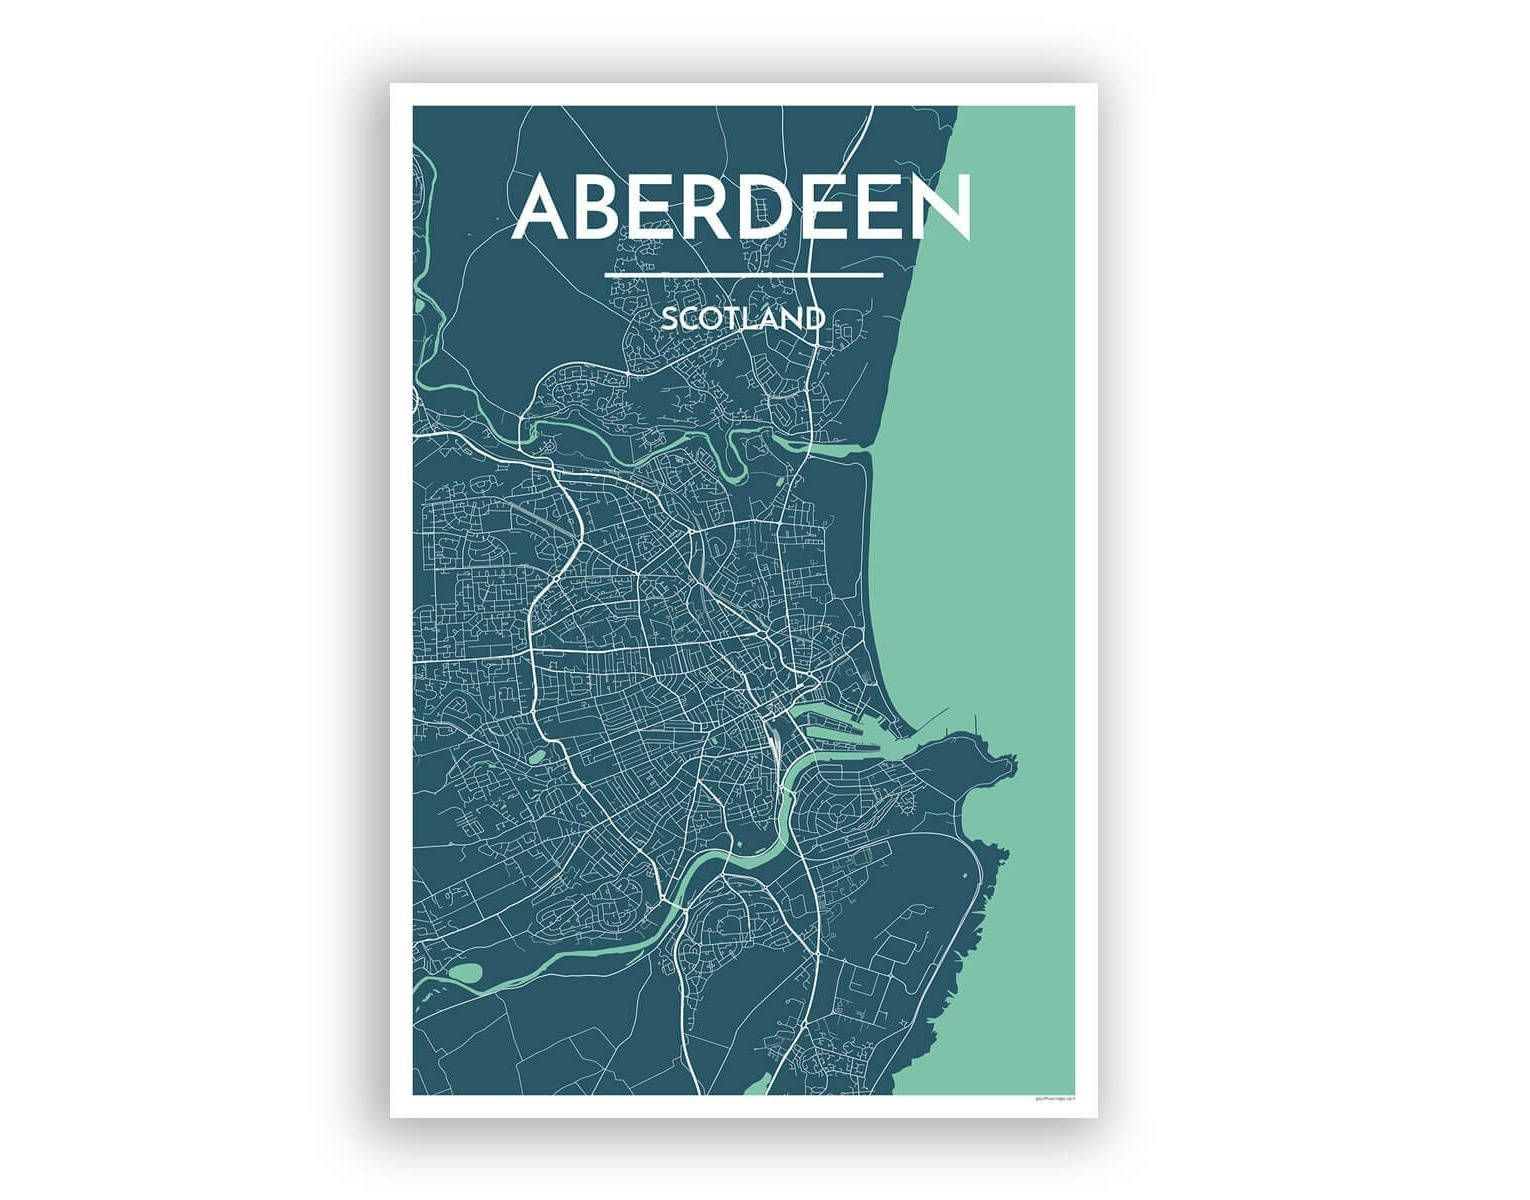 Aberdeen city map print printed via color press on high quality aberdeen city map print printed via color press on high quality 13x19 card stock prints are shipped rolled in a tube and are ready to hang on the wall as gumiabroncs Images